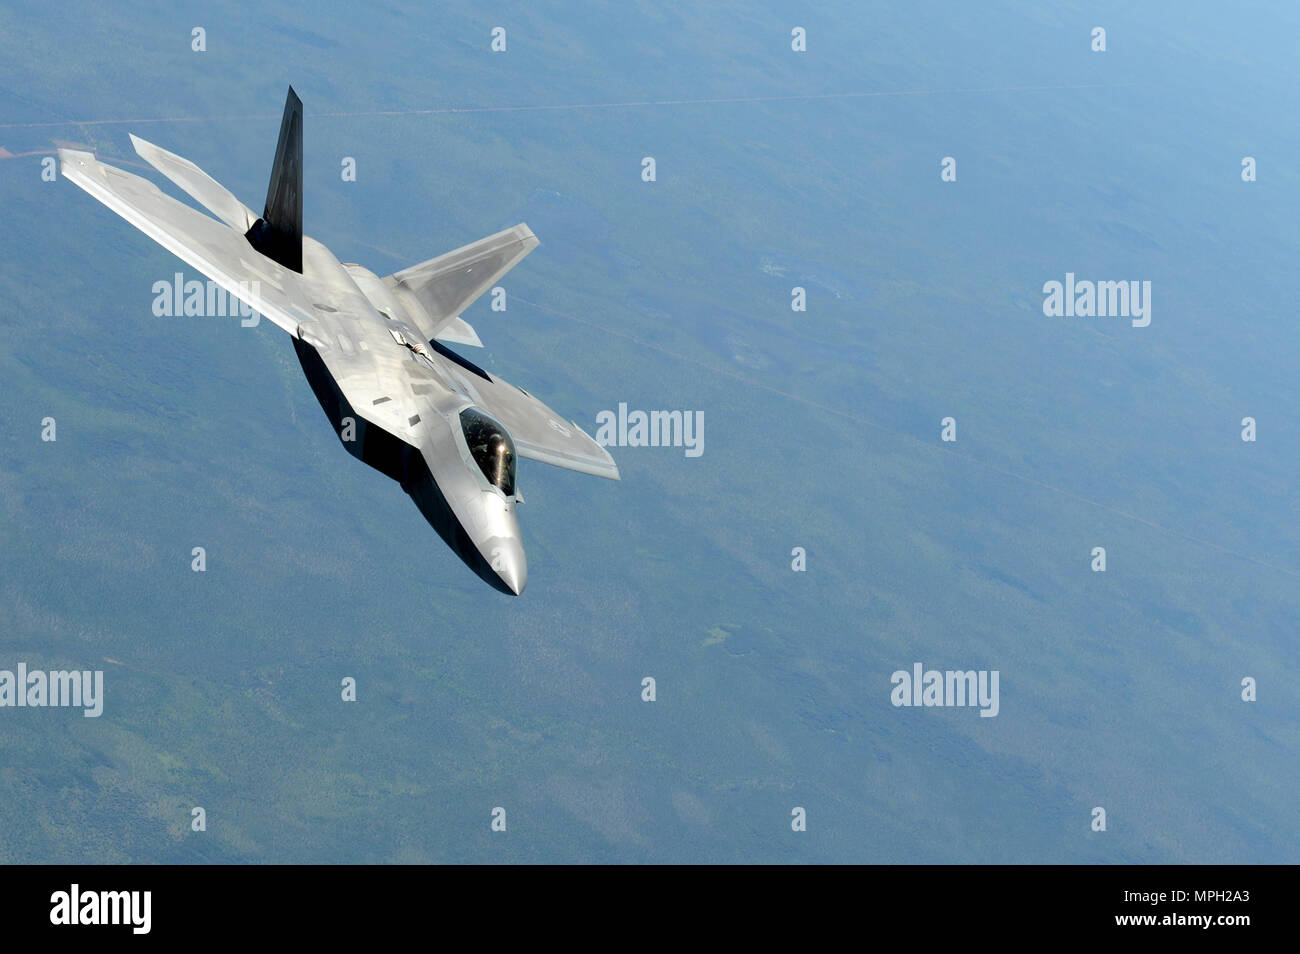 A U.S. Air Force F-22 Raptor flies above Royal Australian Air Force Base Tindal, Australia, March 2, 2017. Twelve F-22 Raptors and approximately 200 U.S. Air Force Airmen participated in the first Enhanced Air Cooperation, an initiative under the Force Posture Agreement between the U.S. and Australia. (U.S. Air Force photo by Staff Sgt. Alexander Martinez) - Stock Image